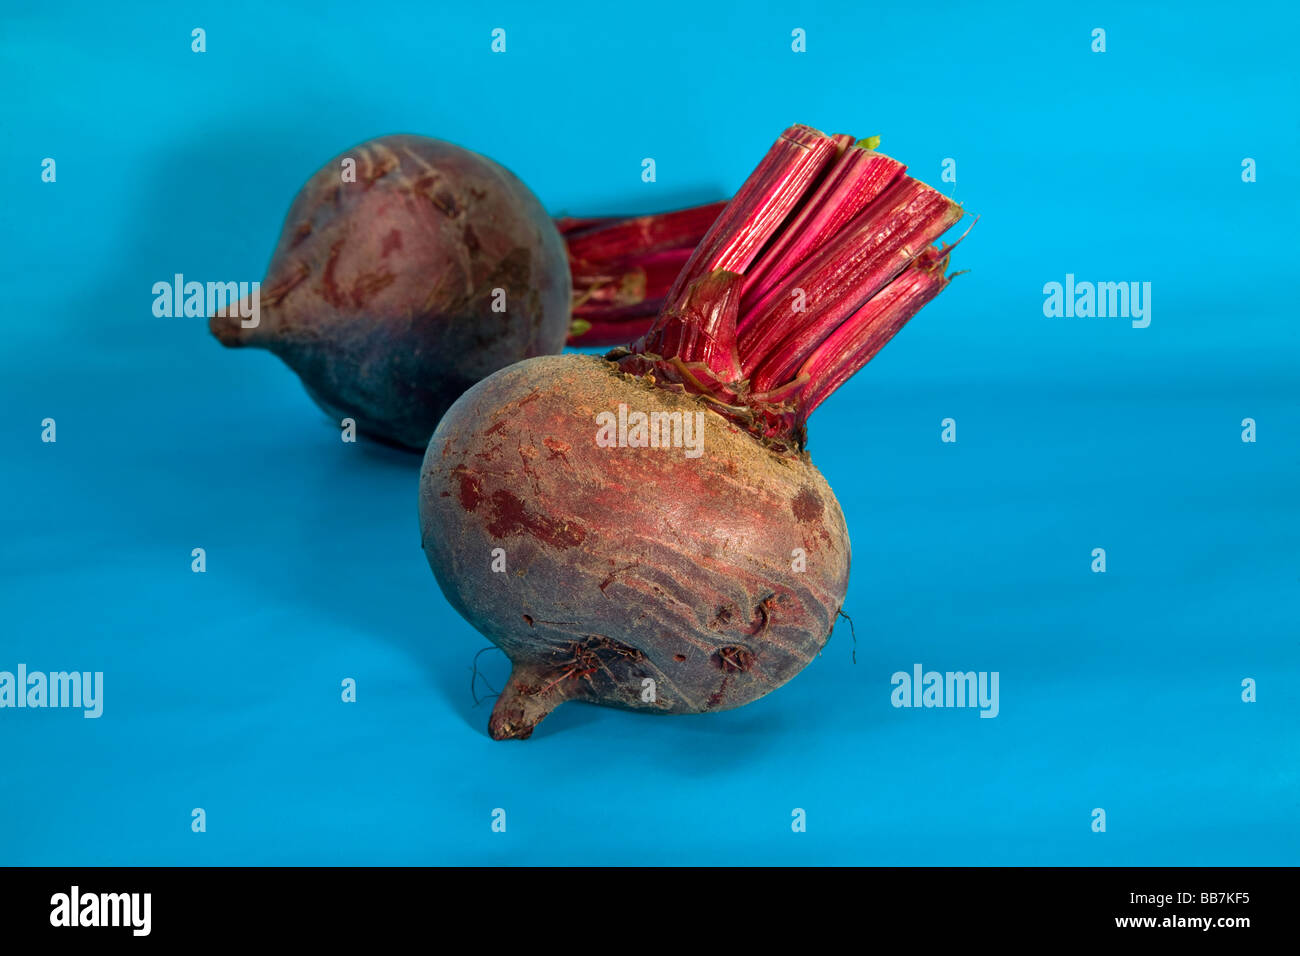 Red sugar beets with their tops clipped - Stock Image